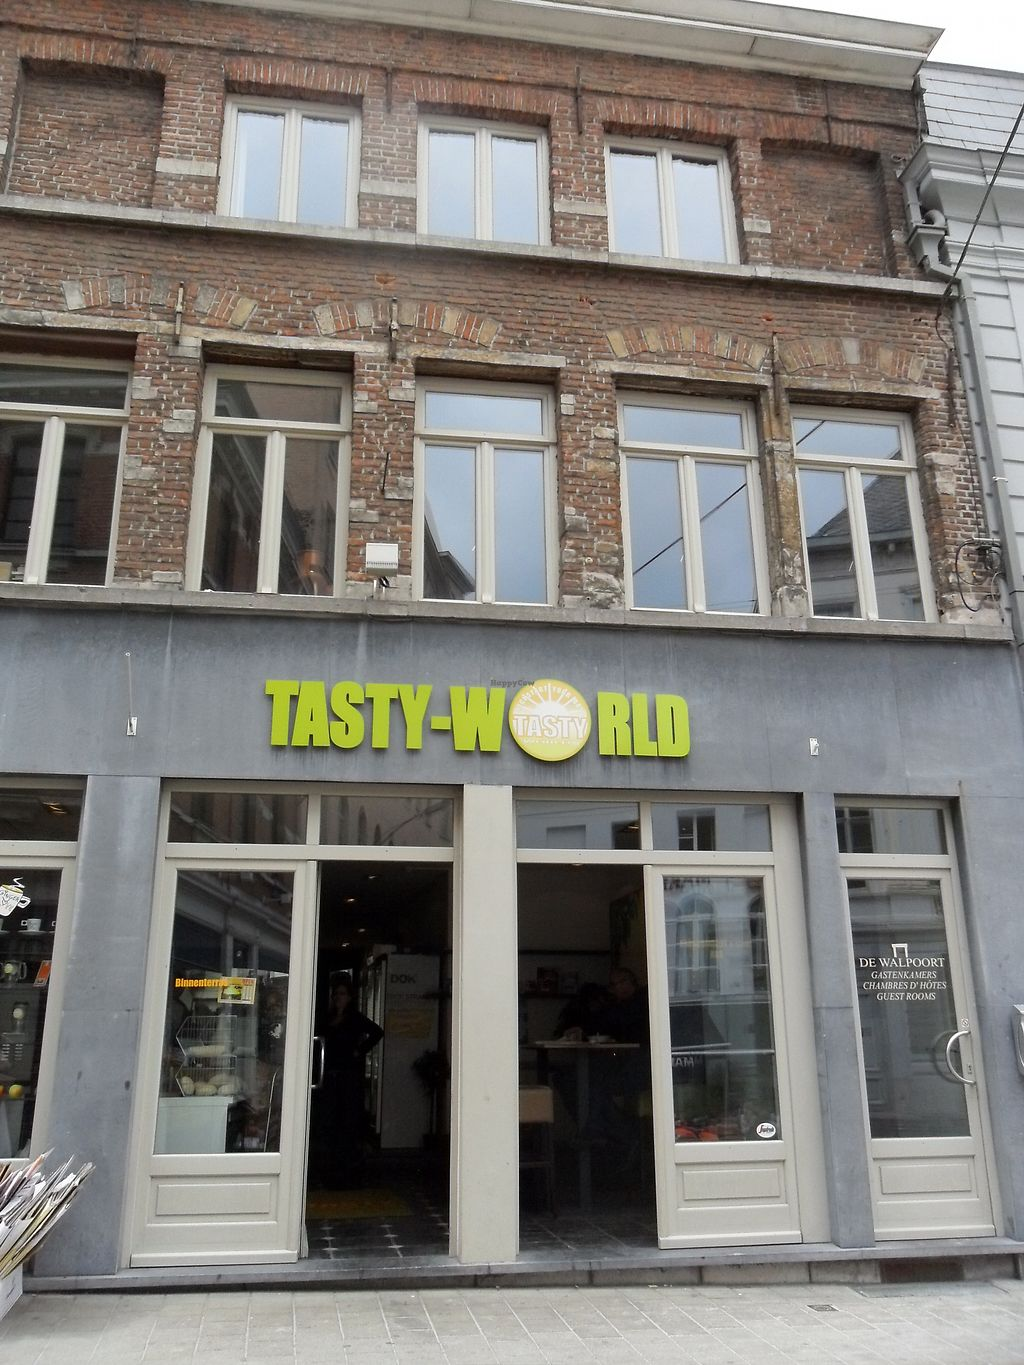 """Photo of CLOSED: Tasty World II  by <a href=""""/members/profile/TrudiBruges"""">TrudiBruges</a> <br/>visit 2011 <br/> November 29, 2017  - <a href='/contact/abuse/image/85503/330509'>Report</a>"""